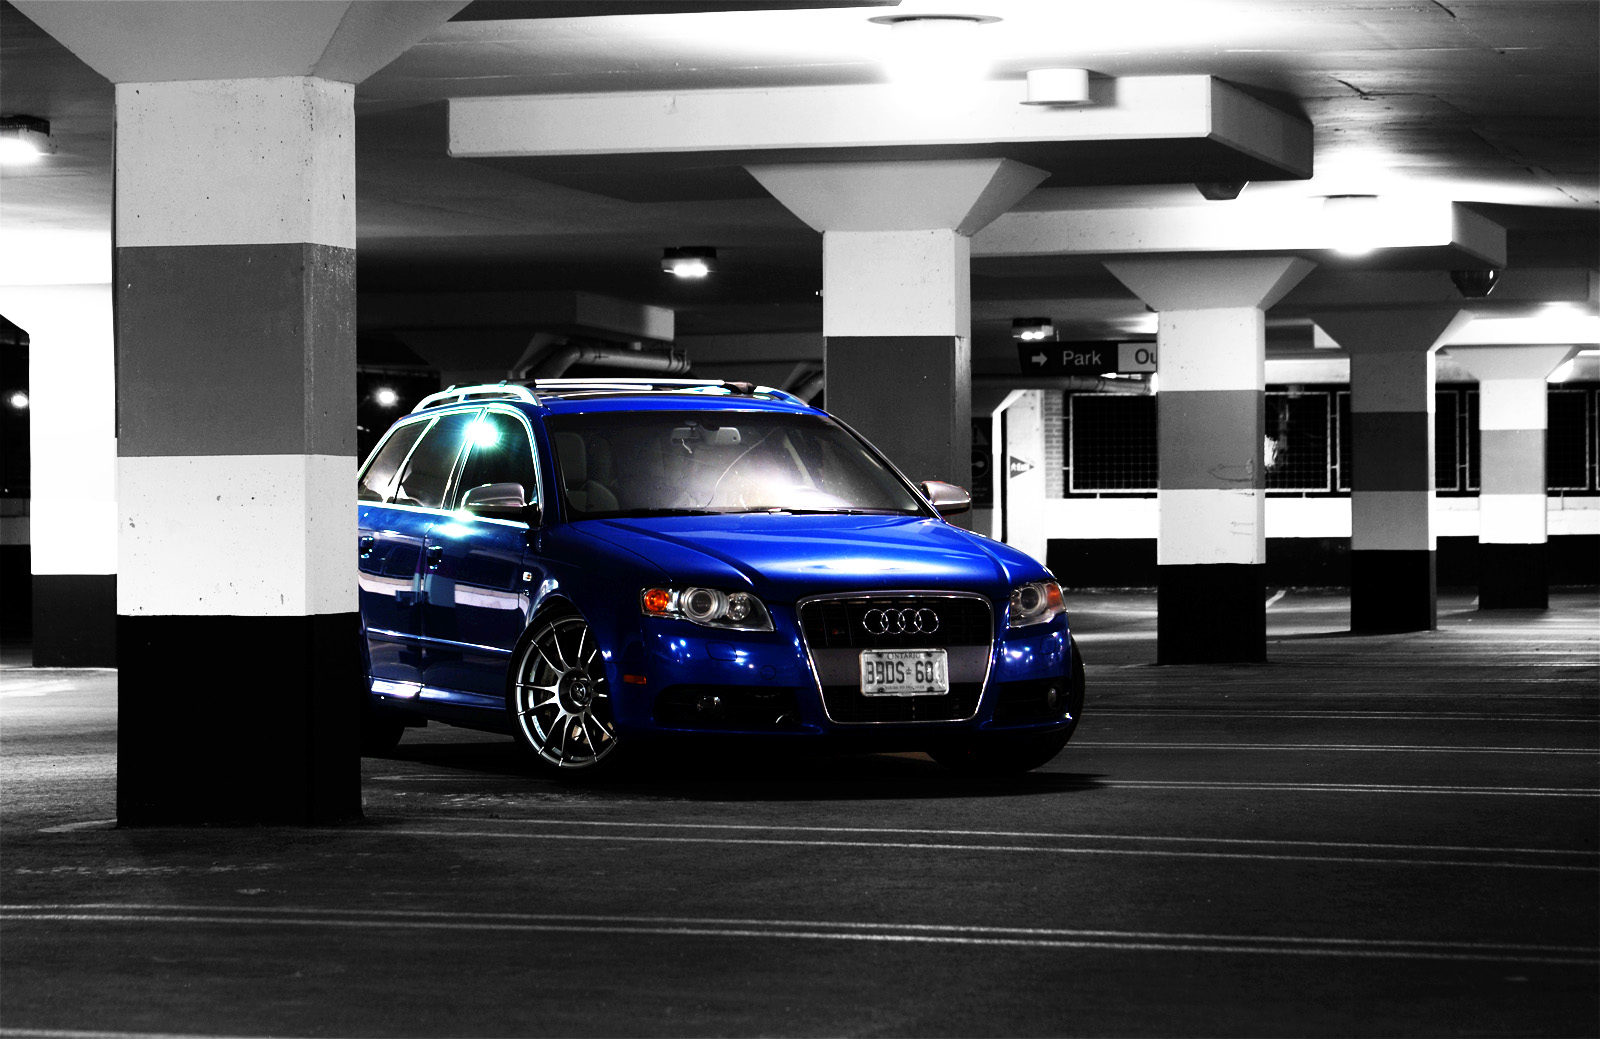 Sprint Blue B7 S4 Avant Photoshoot Parking Garage Audi